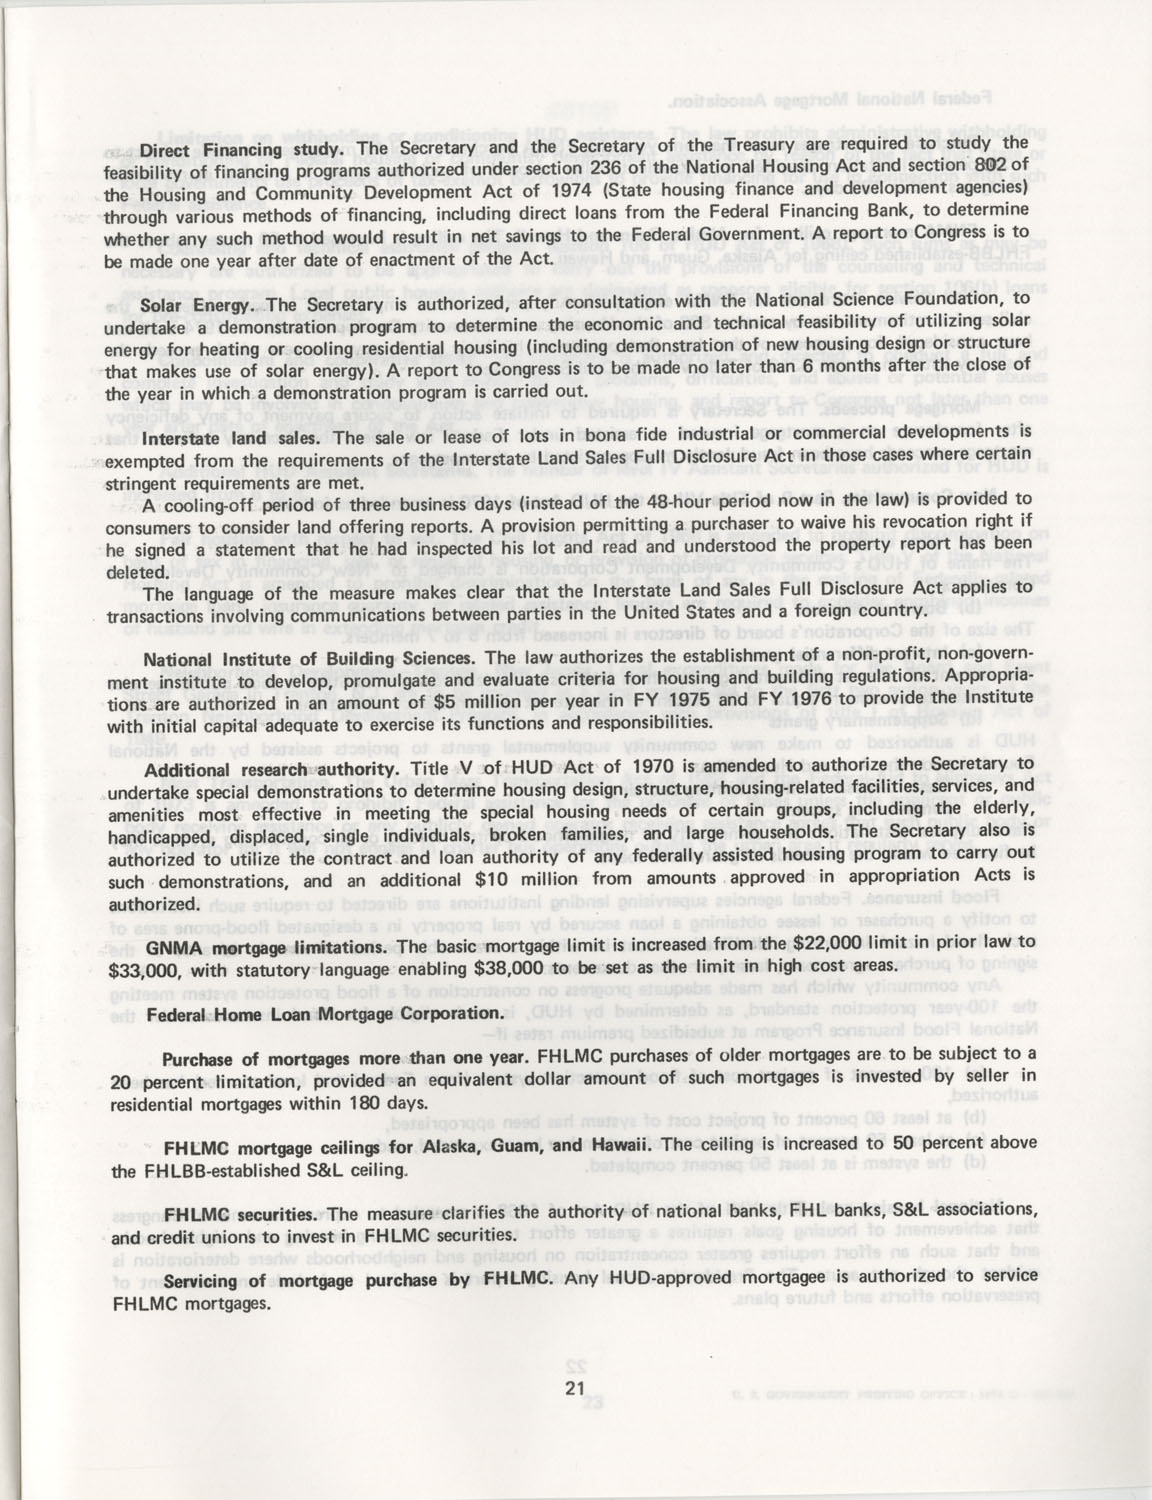 Summary of the Housing and Community Development Act of 1974, Page 21